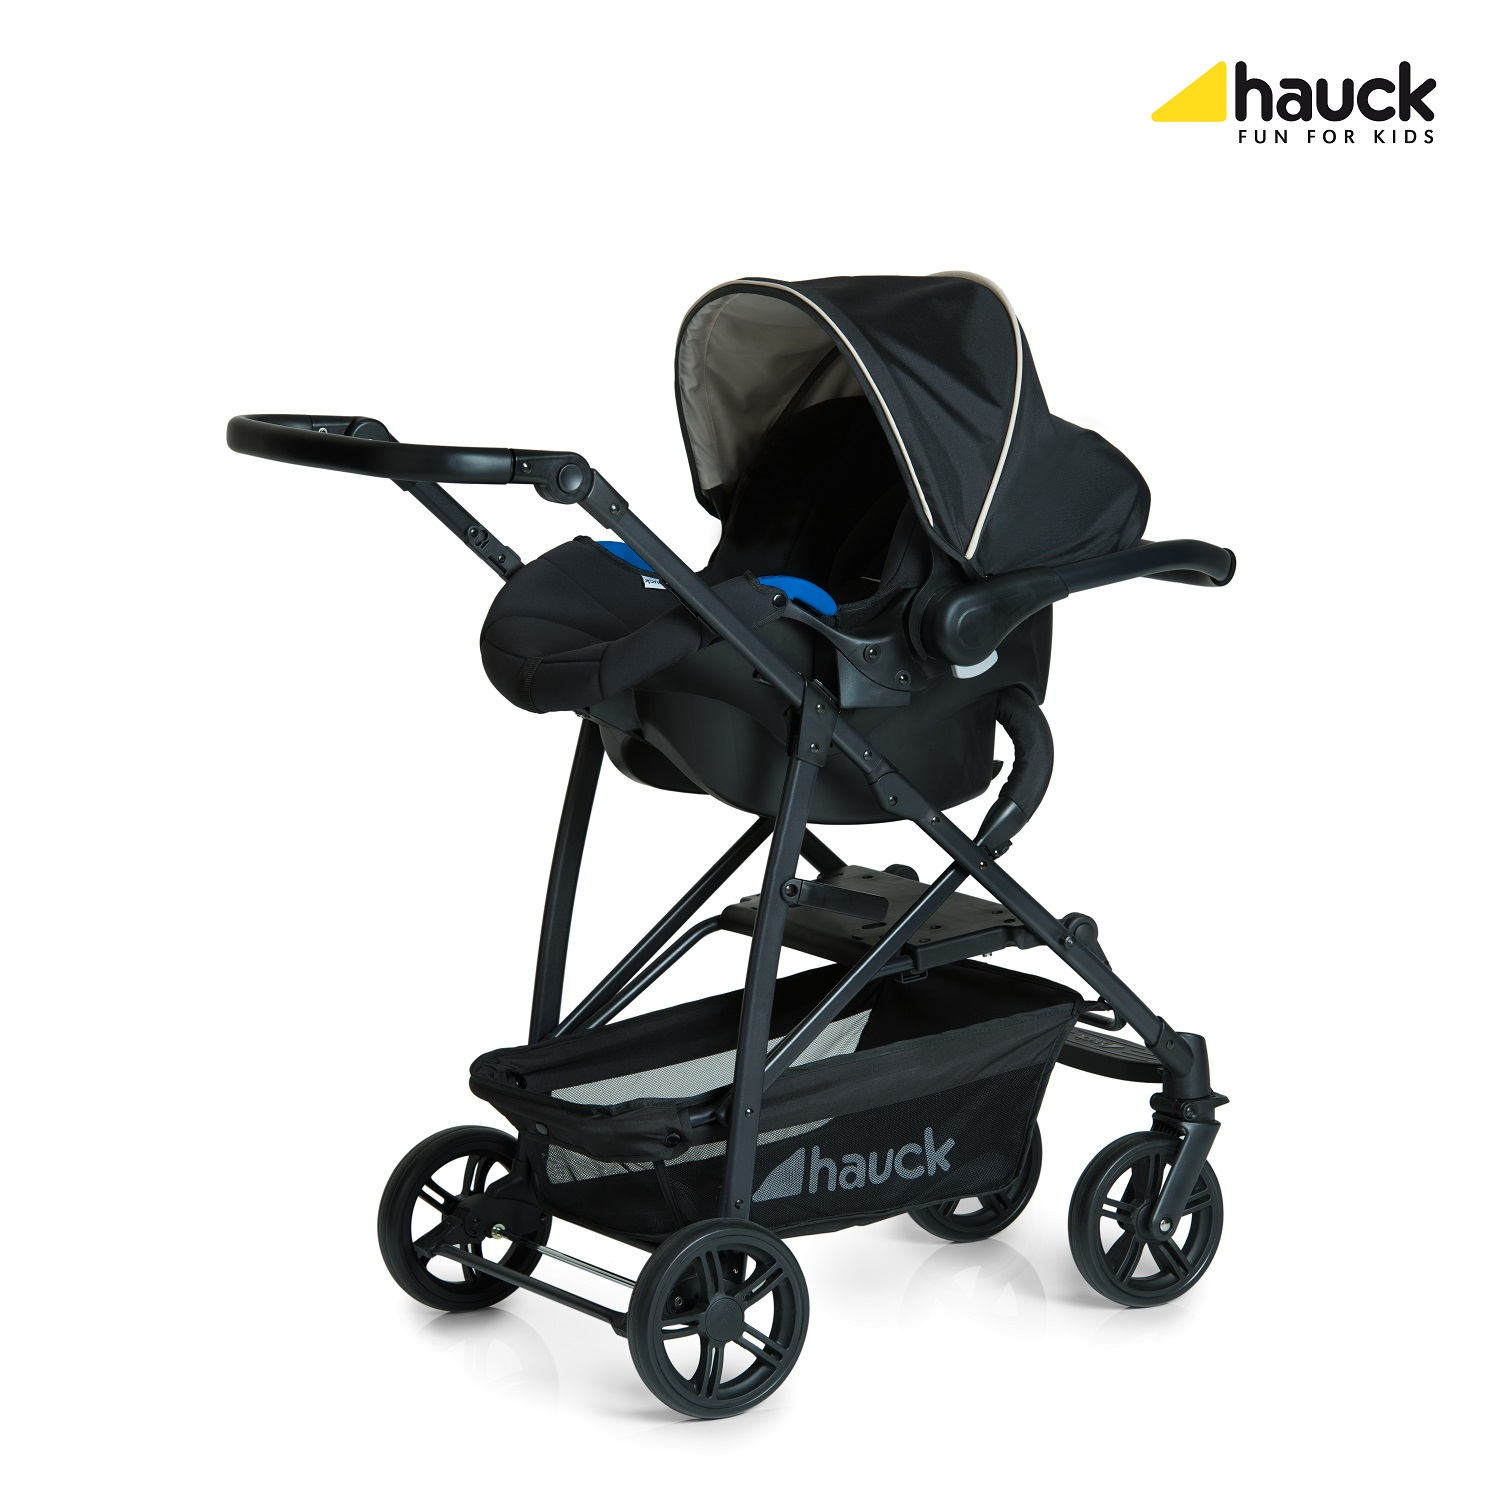 hauck stroller rapid 4 plus trio set buy at kidsroom. Black Bedroom Furniture Sets. Home Design Ideas